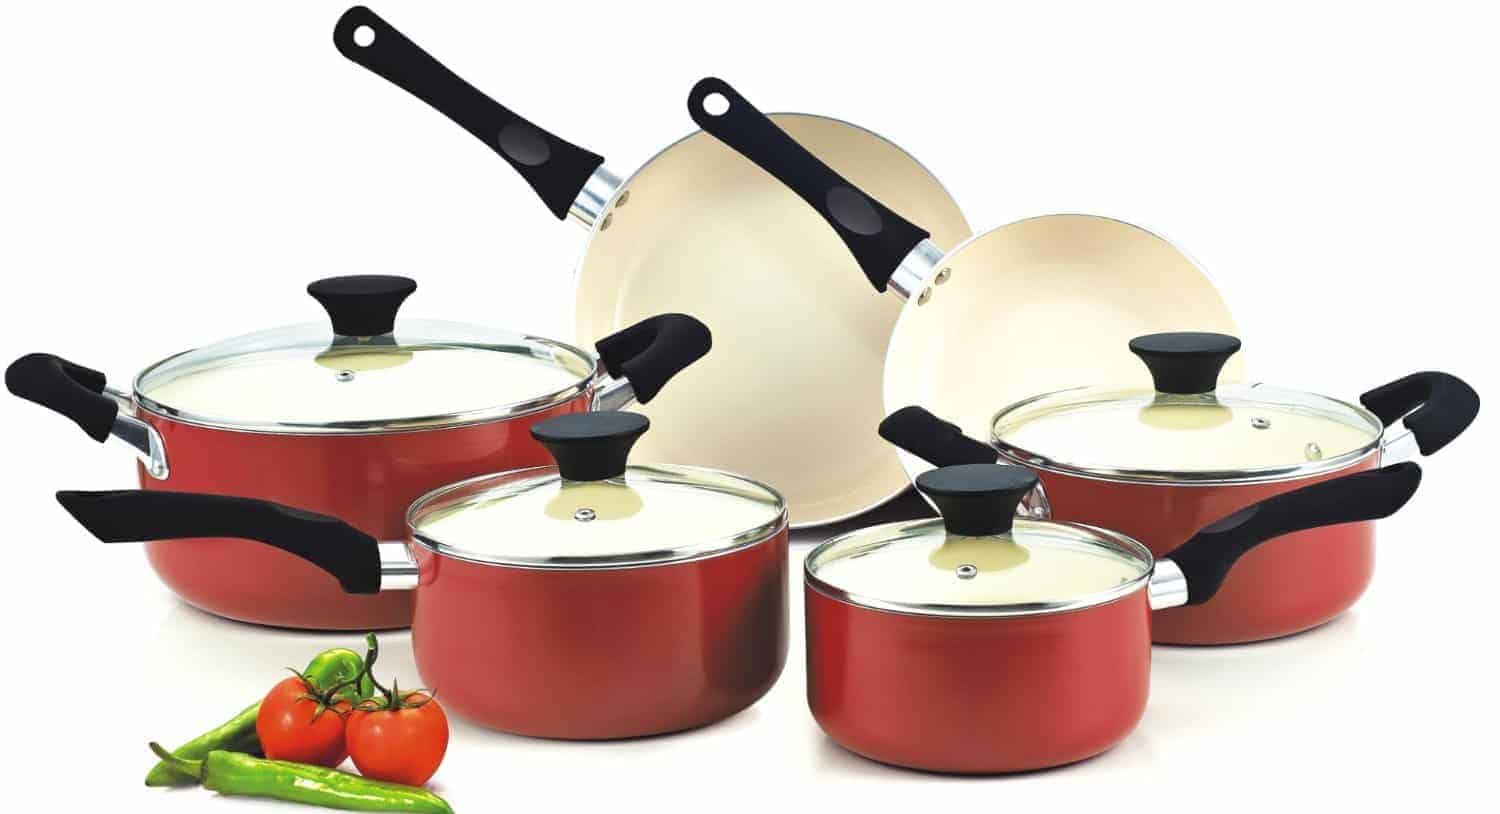 Cook N Home NC-00359 Non-stick Ceramic Coating 10-Piece Cookware Set